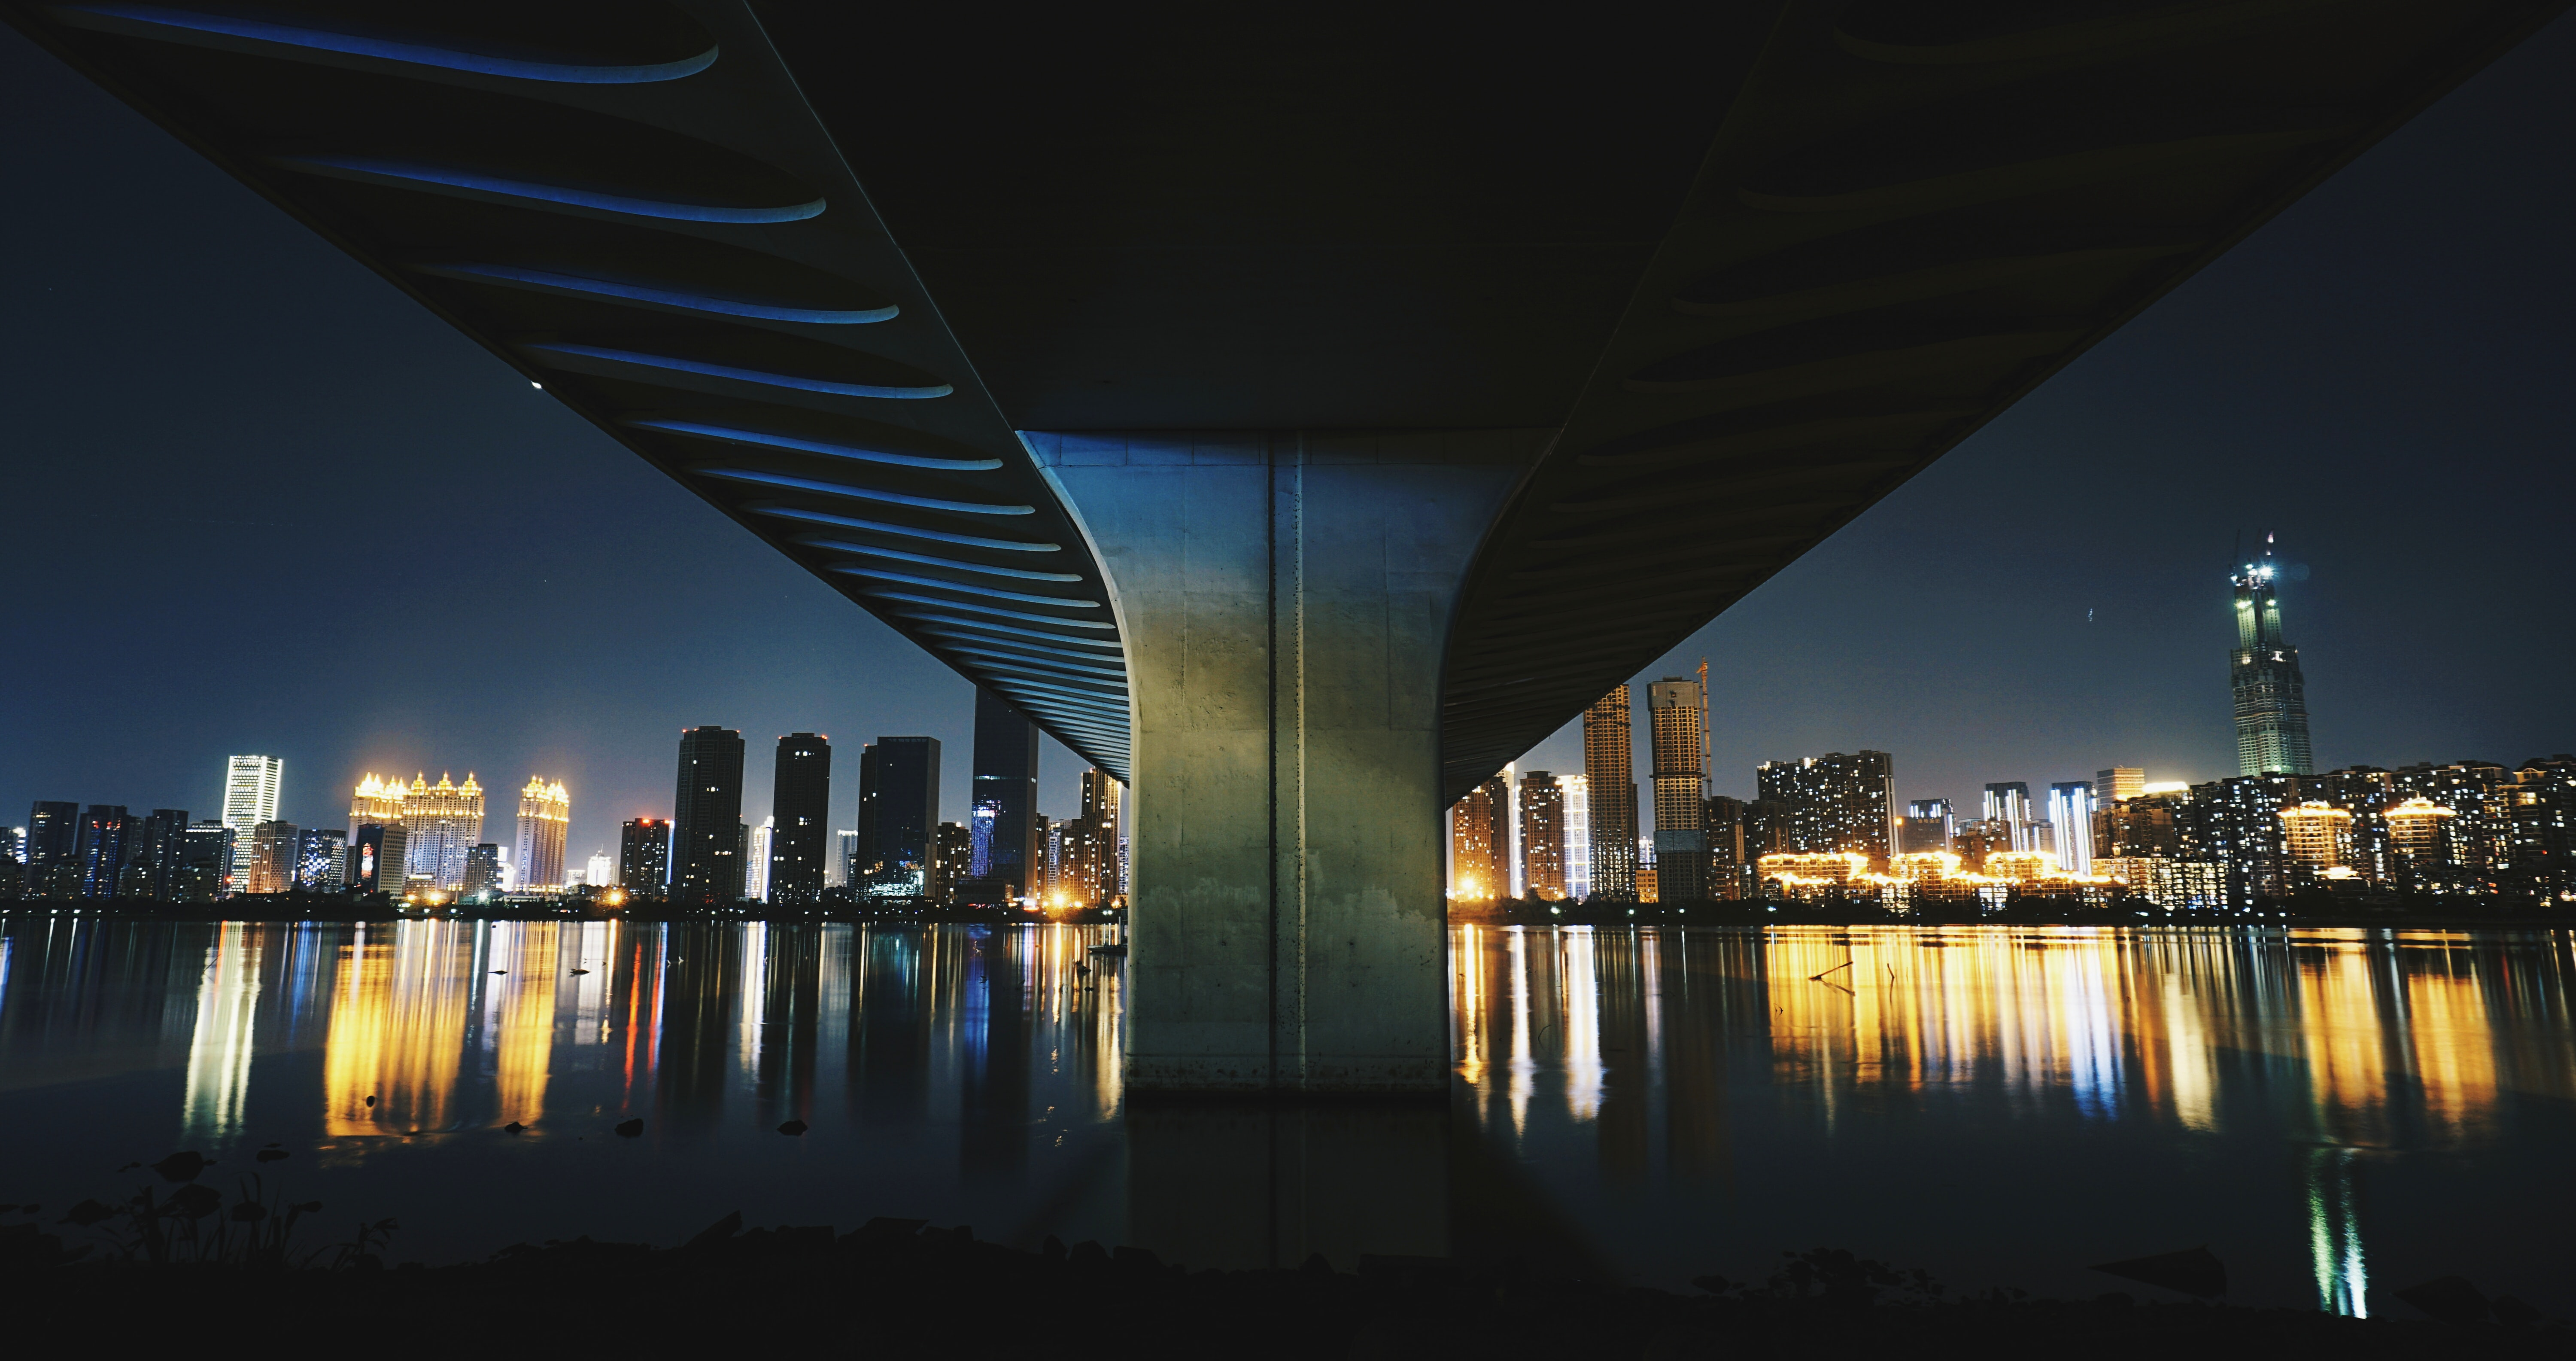 gray concrete bridge between city skyline during night time